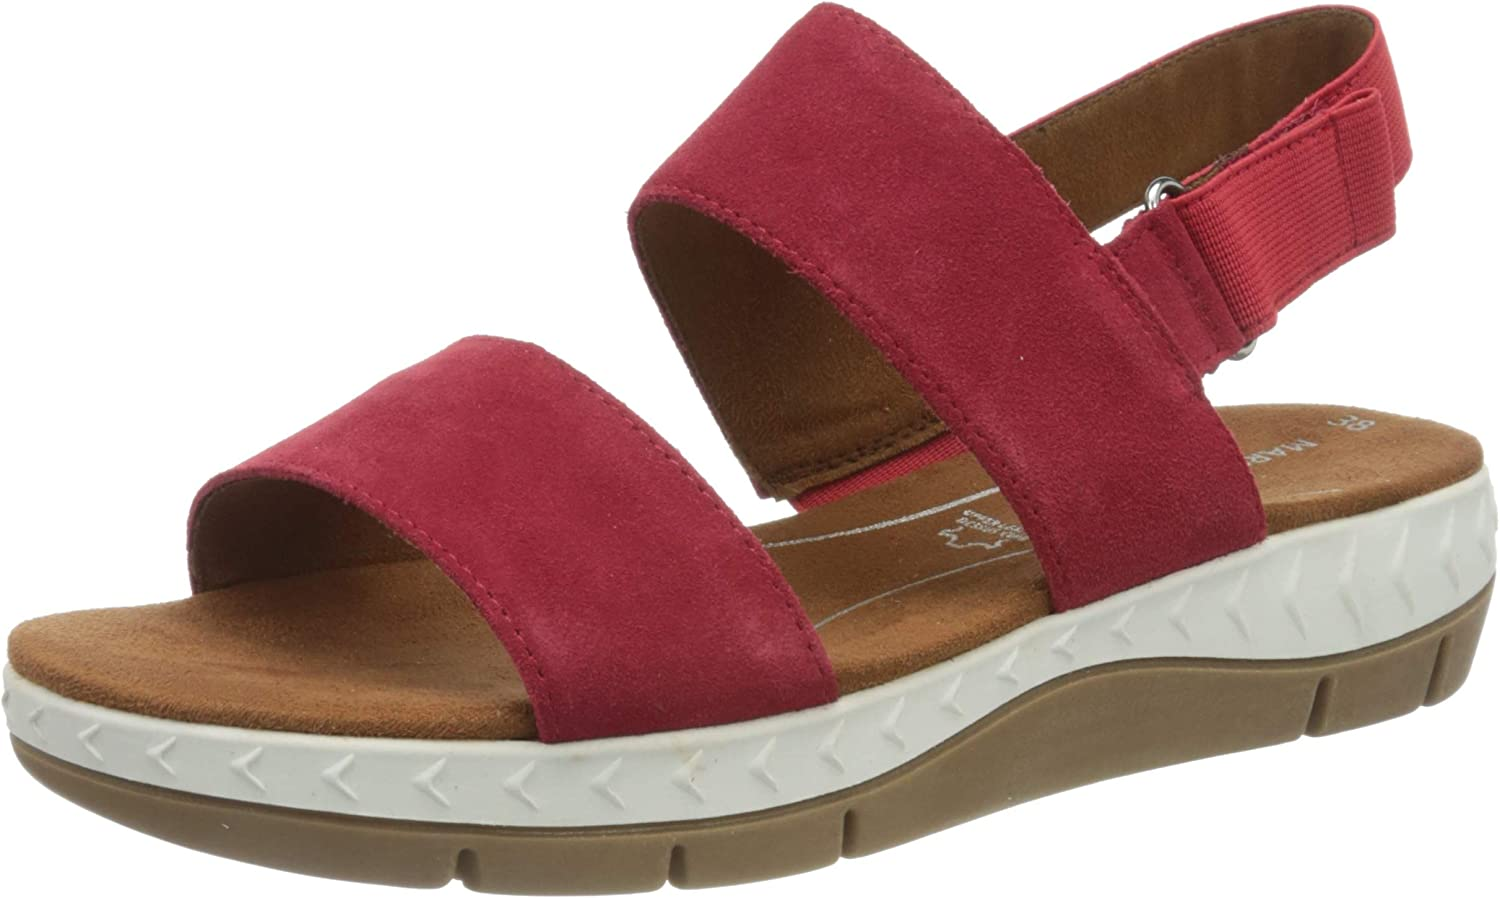 Marco Tozzi Women's Strap Online limited product Ankle Sandals OFFer